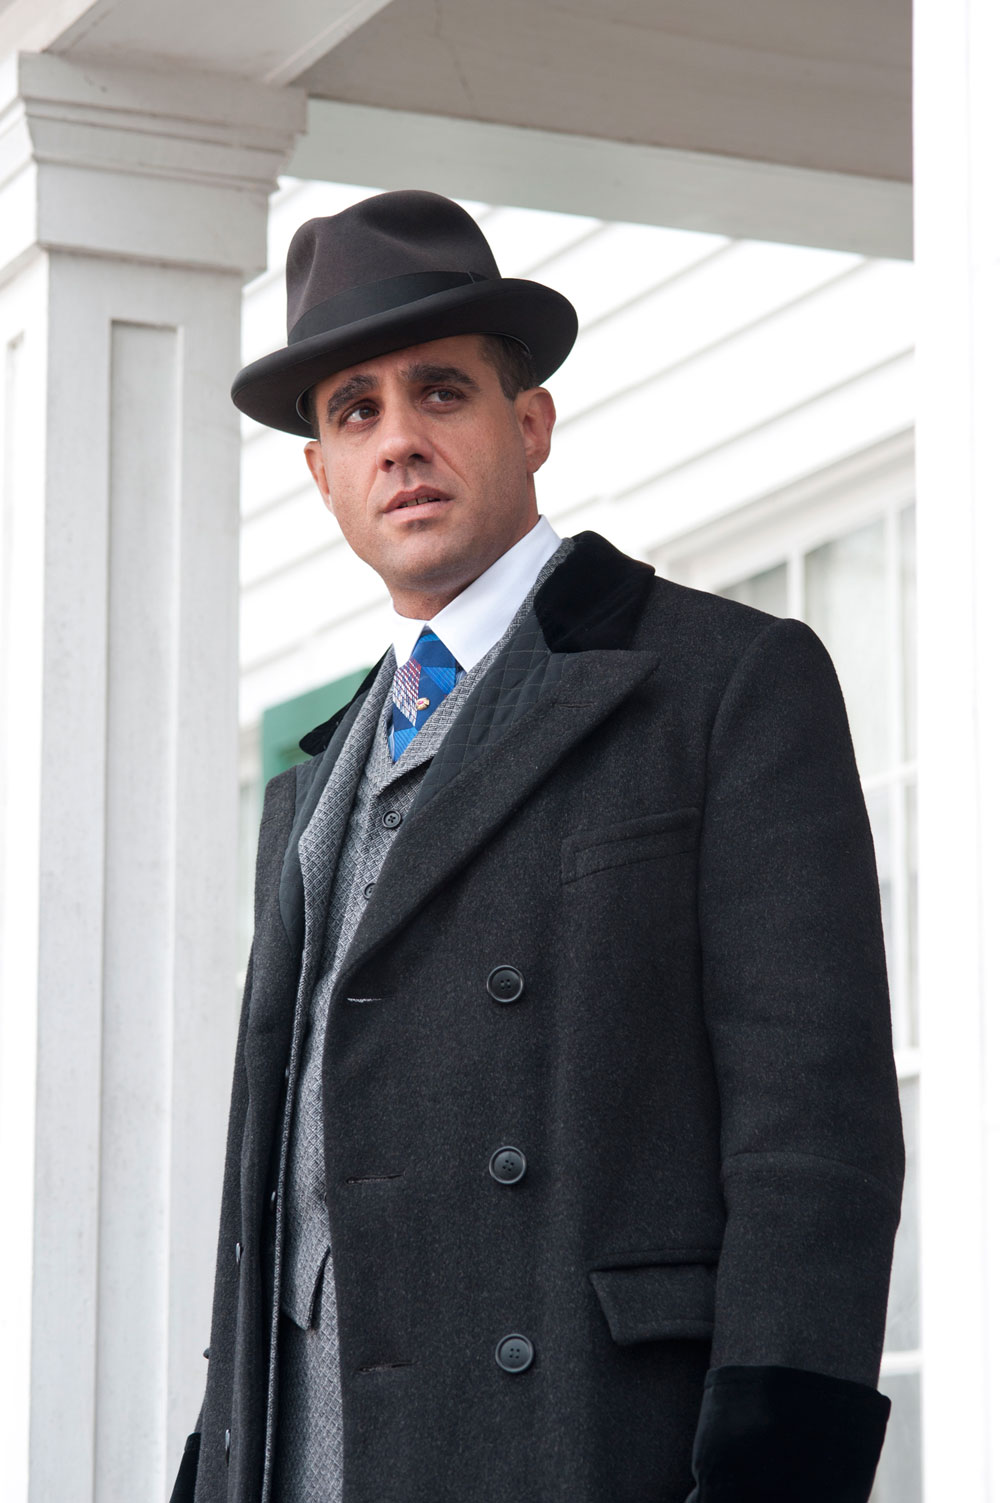 boardwalk empire behind the scenes - Google Search | Behind the ...